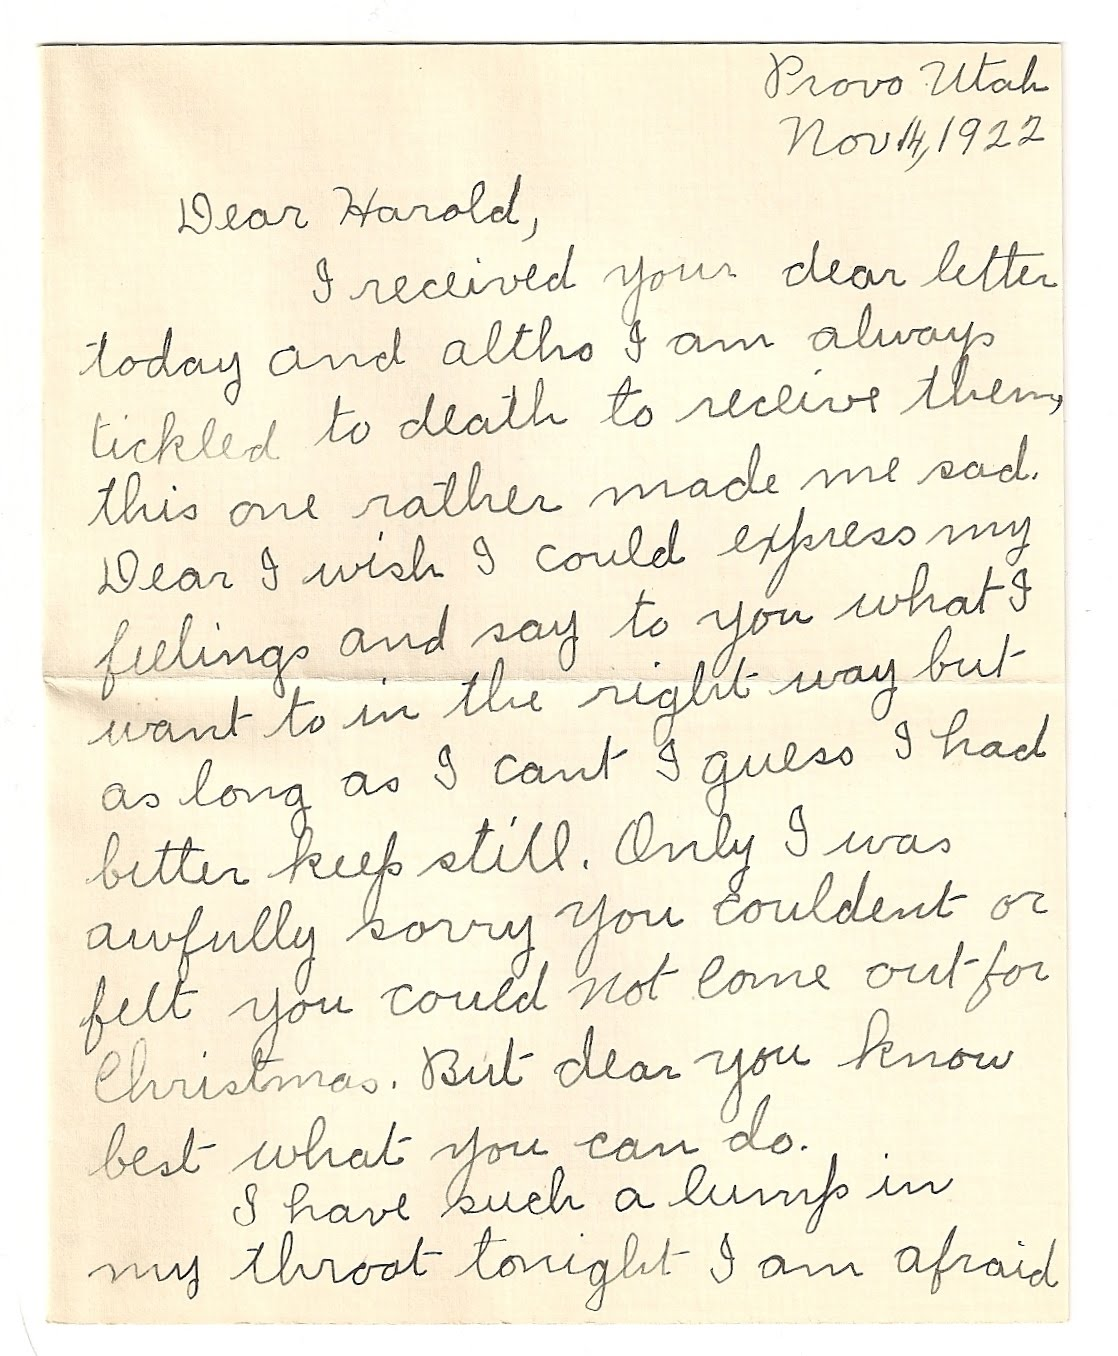 this darling love letter made my eyes well up for my sweet love sick 22 year old grandmother she was attending college working on her normal degree to